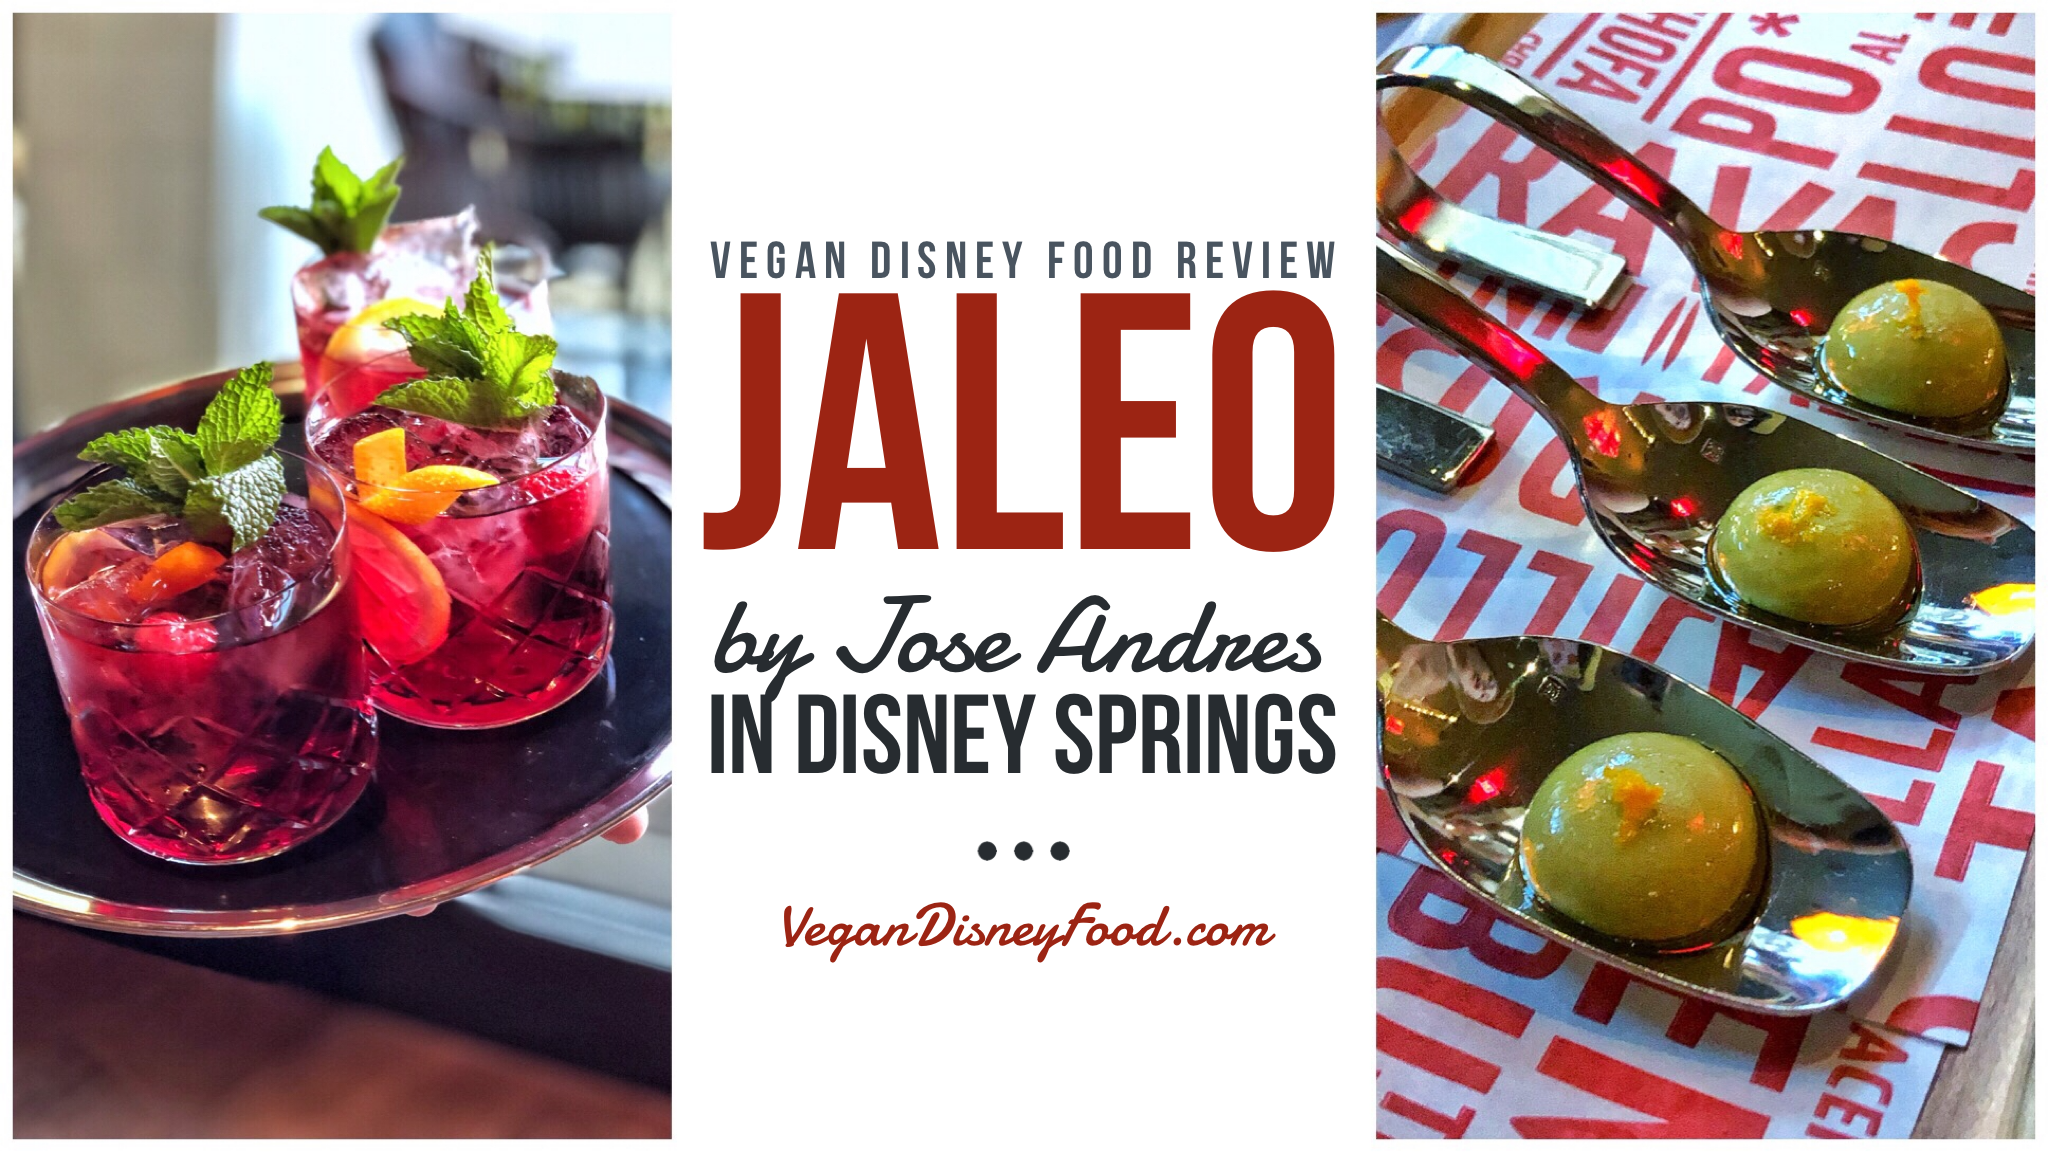 Vegan Disney Food Review: Jaleo by Jose Andres in Disney Springs